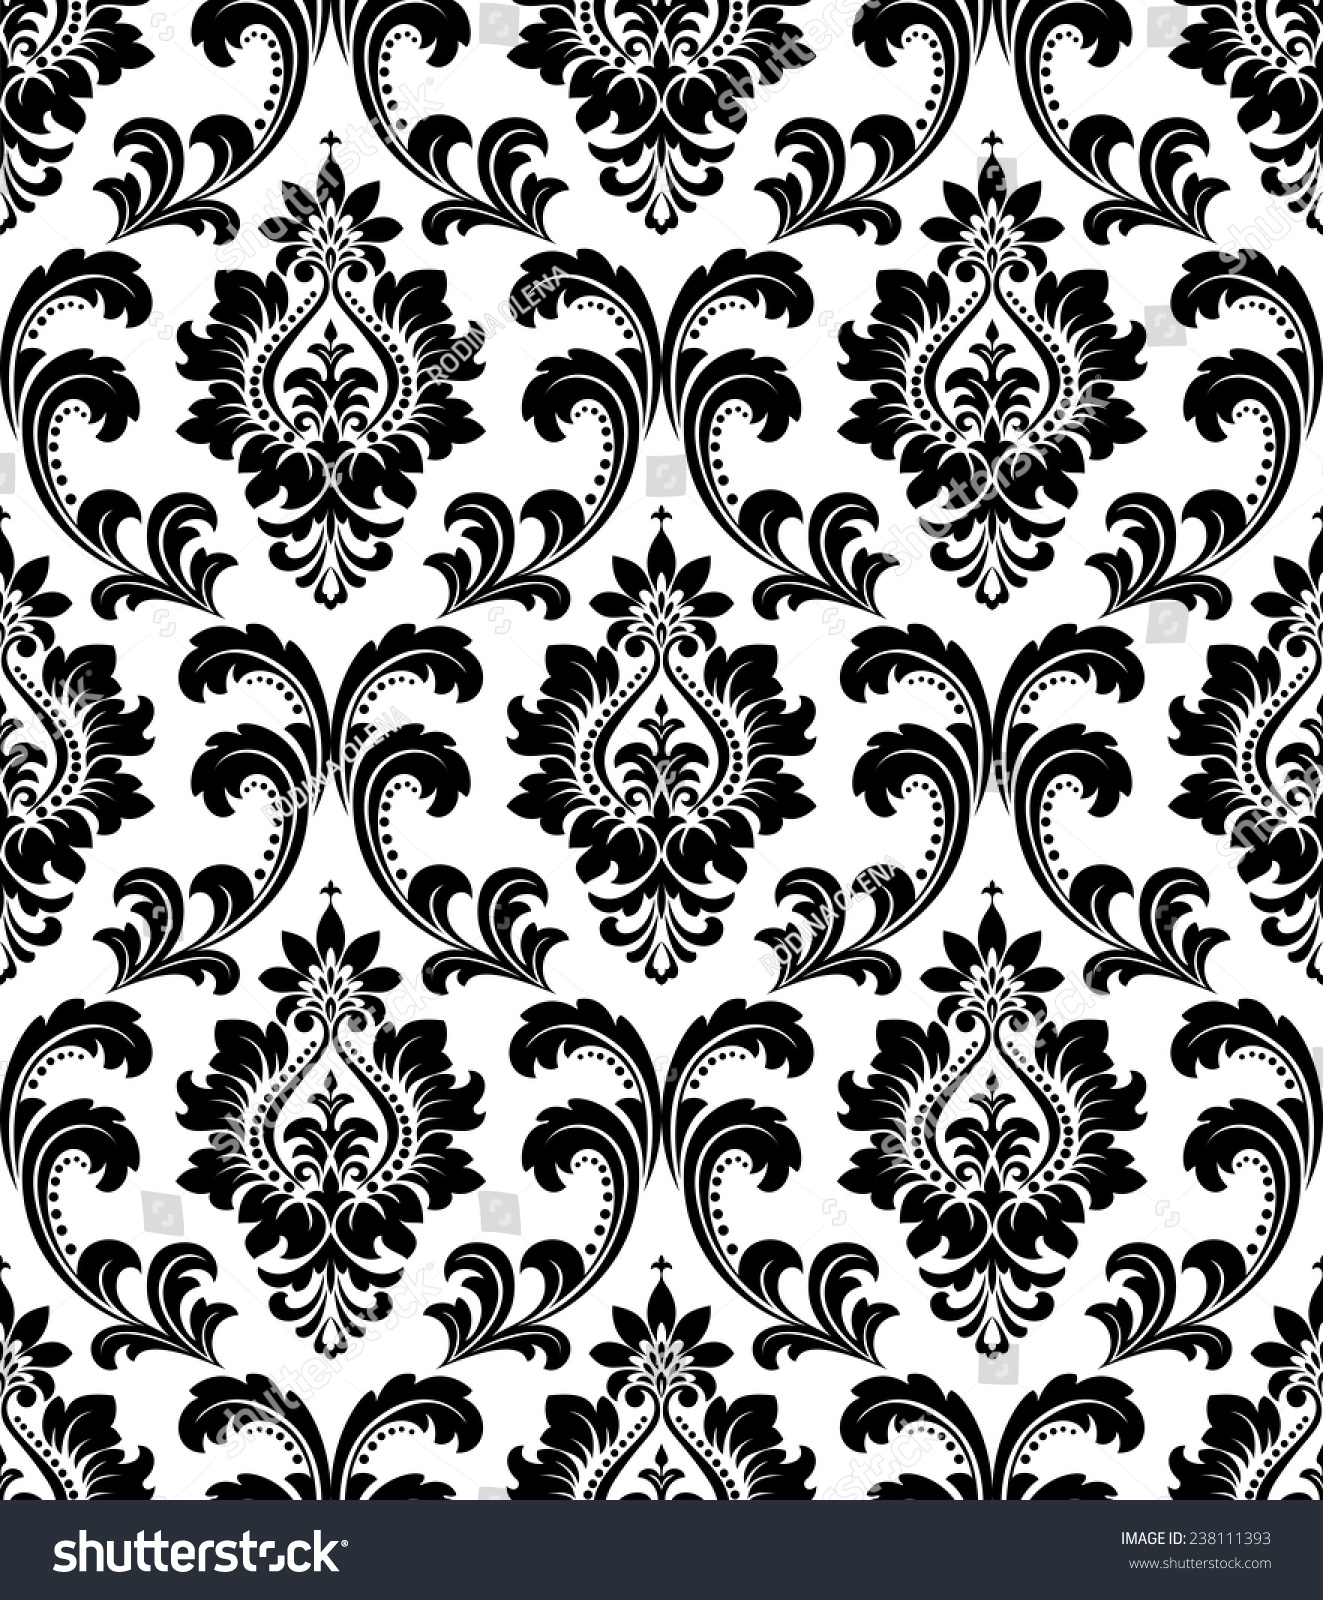 black and white floral patterns backgrounds wwwimgkid